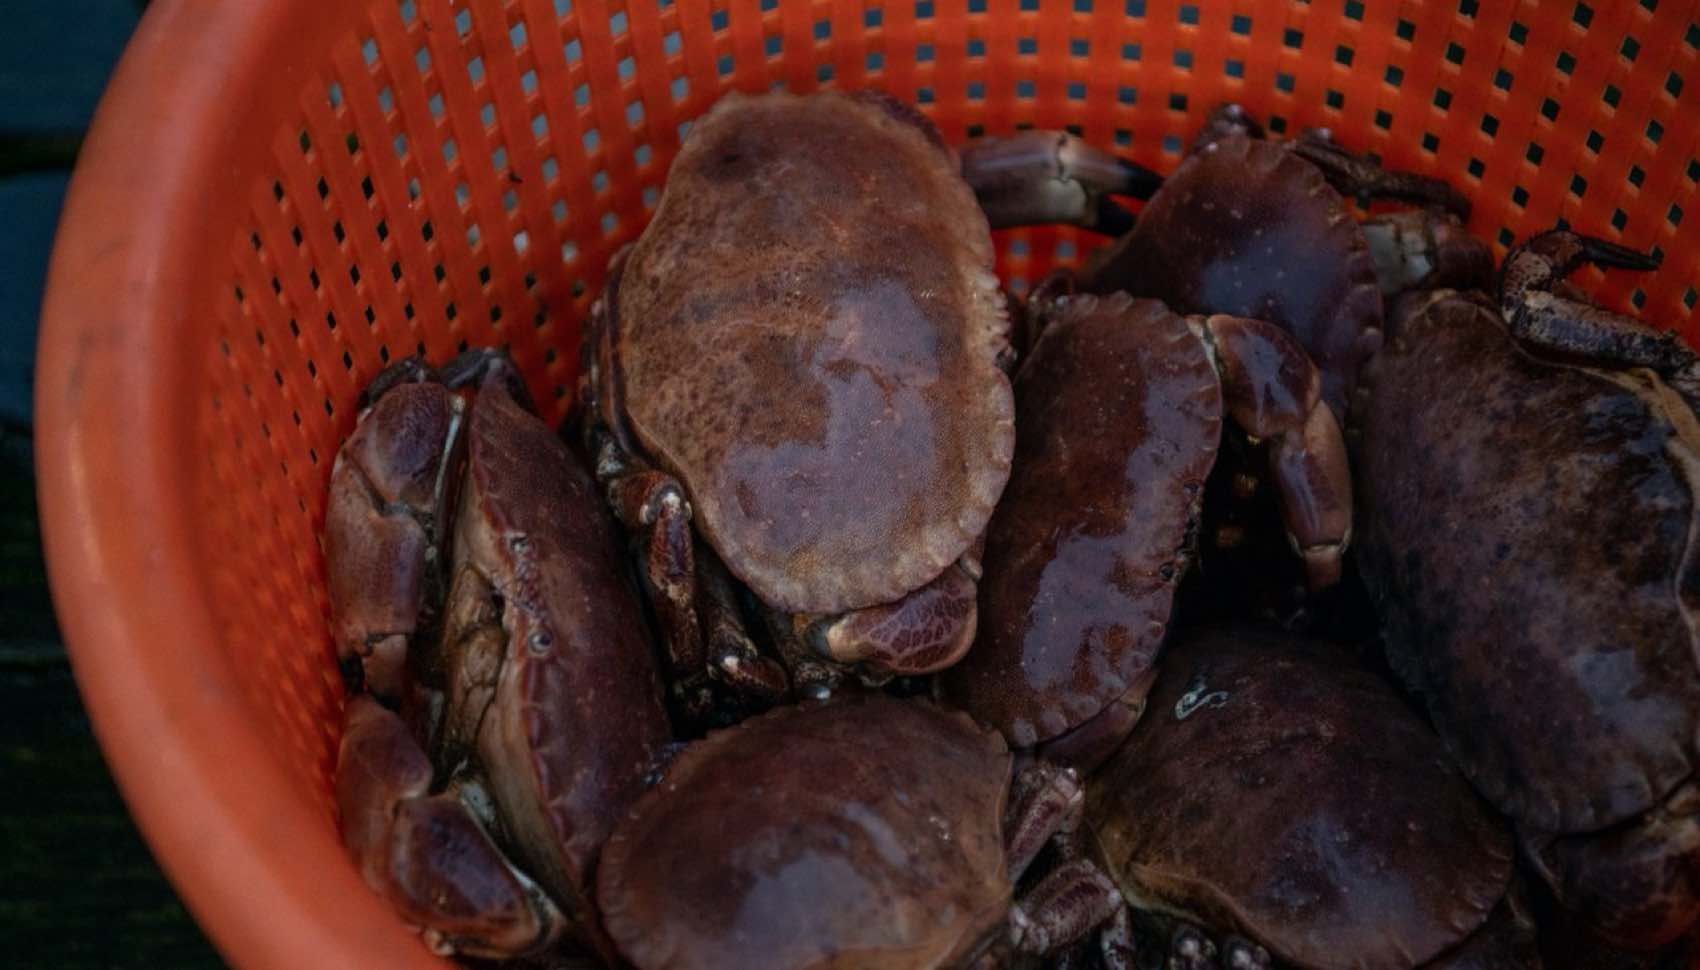 Seafood: Gilleleje harbour crabs. Picking crab meat takes time